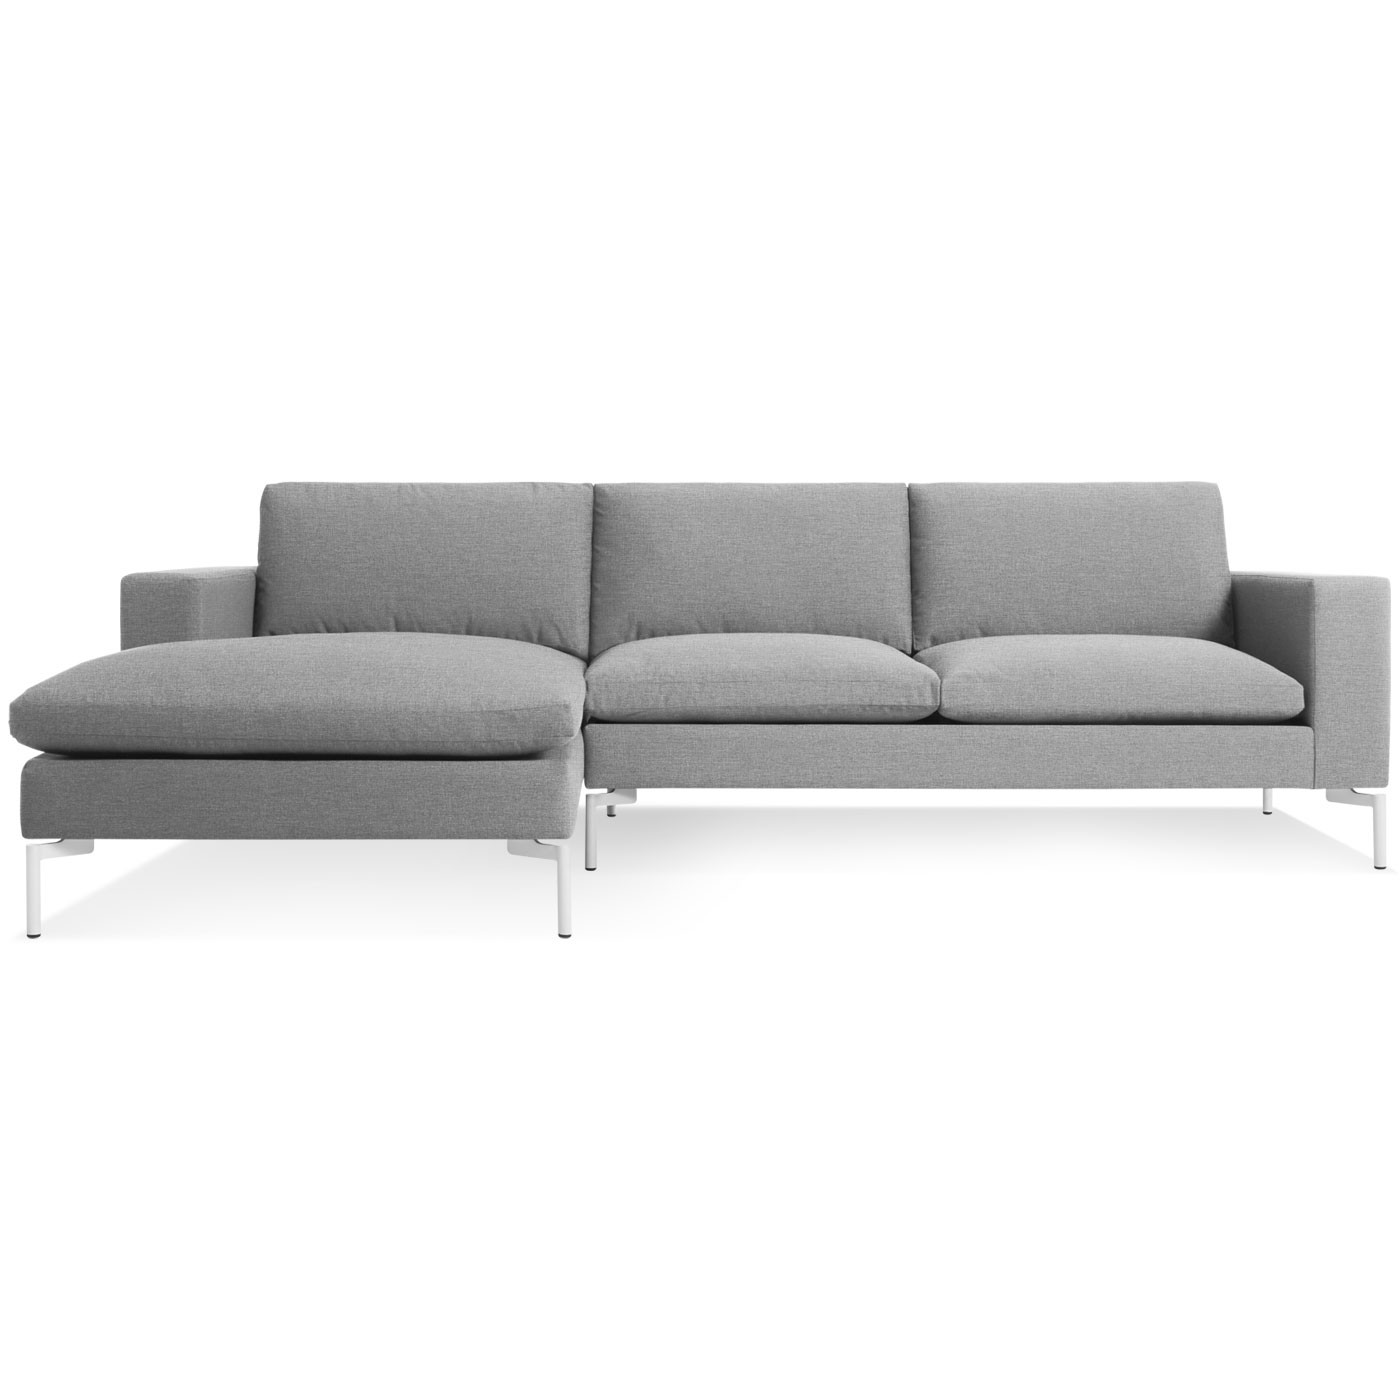 New Standard Sofa with Chaise by Blu Dot — Hub Modern Home + GiftPost — Hub  Modern Home + Gift